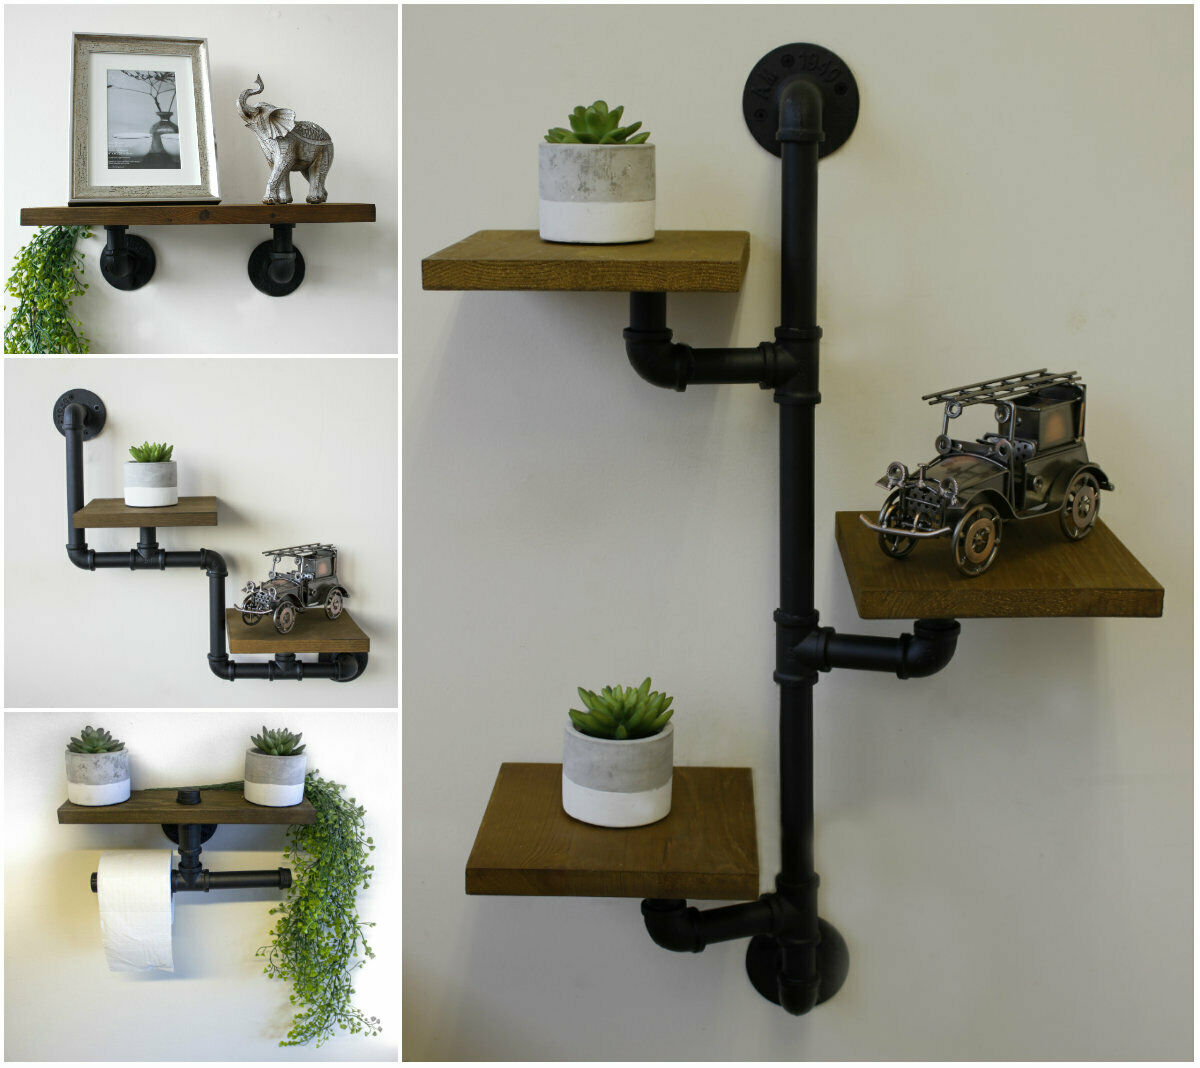 New Industrial Pipe Wood Shelf Wooden Book Shelving Unit Wall Mounted Shelves